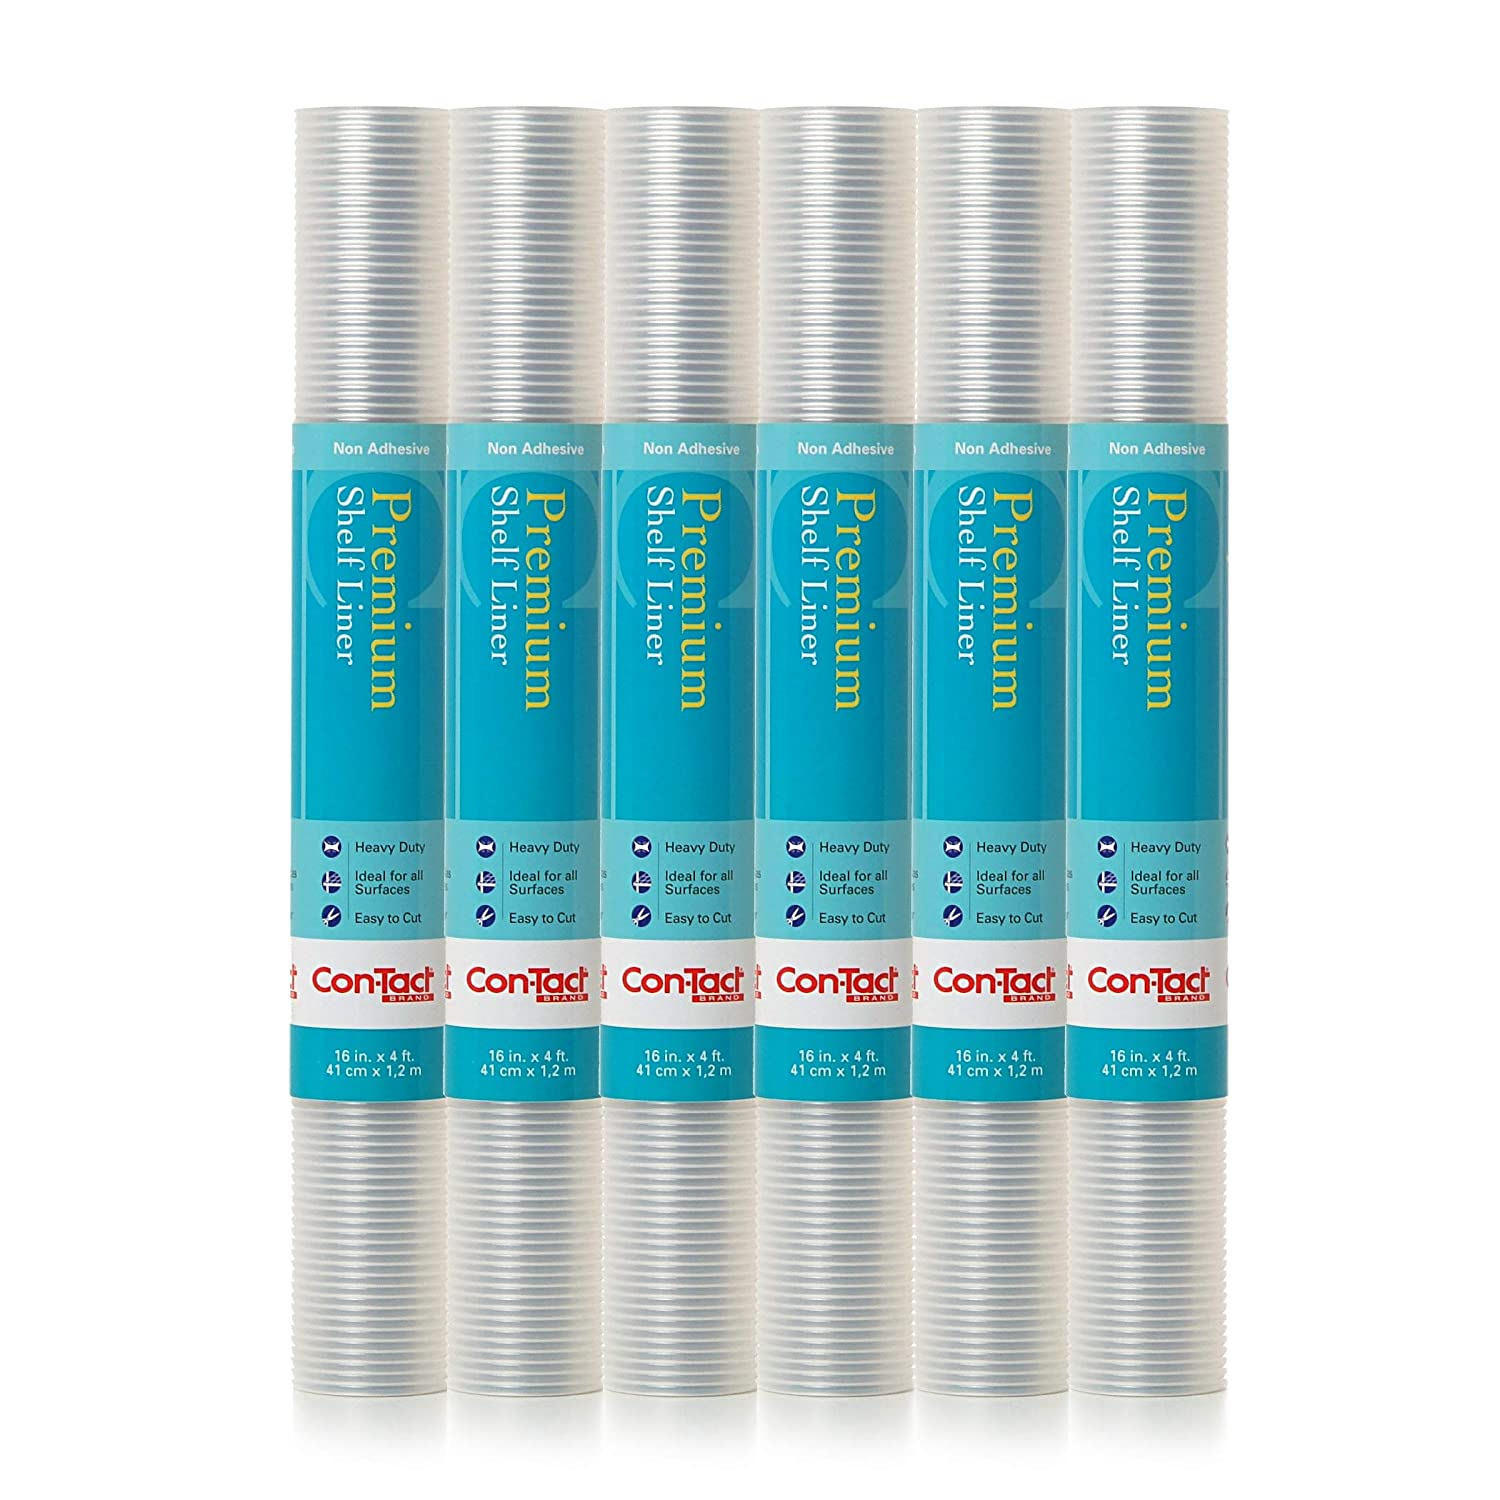 """Con-Tact Brand Brand Premium Non-Adhesive Contact Shelf and Drawer Liner, 16"""" x 4',6 Rolls, Ribbed Clear"""